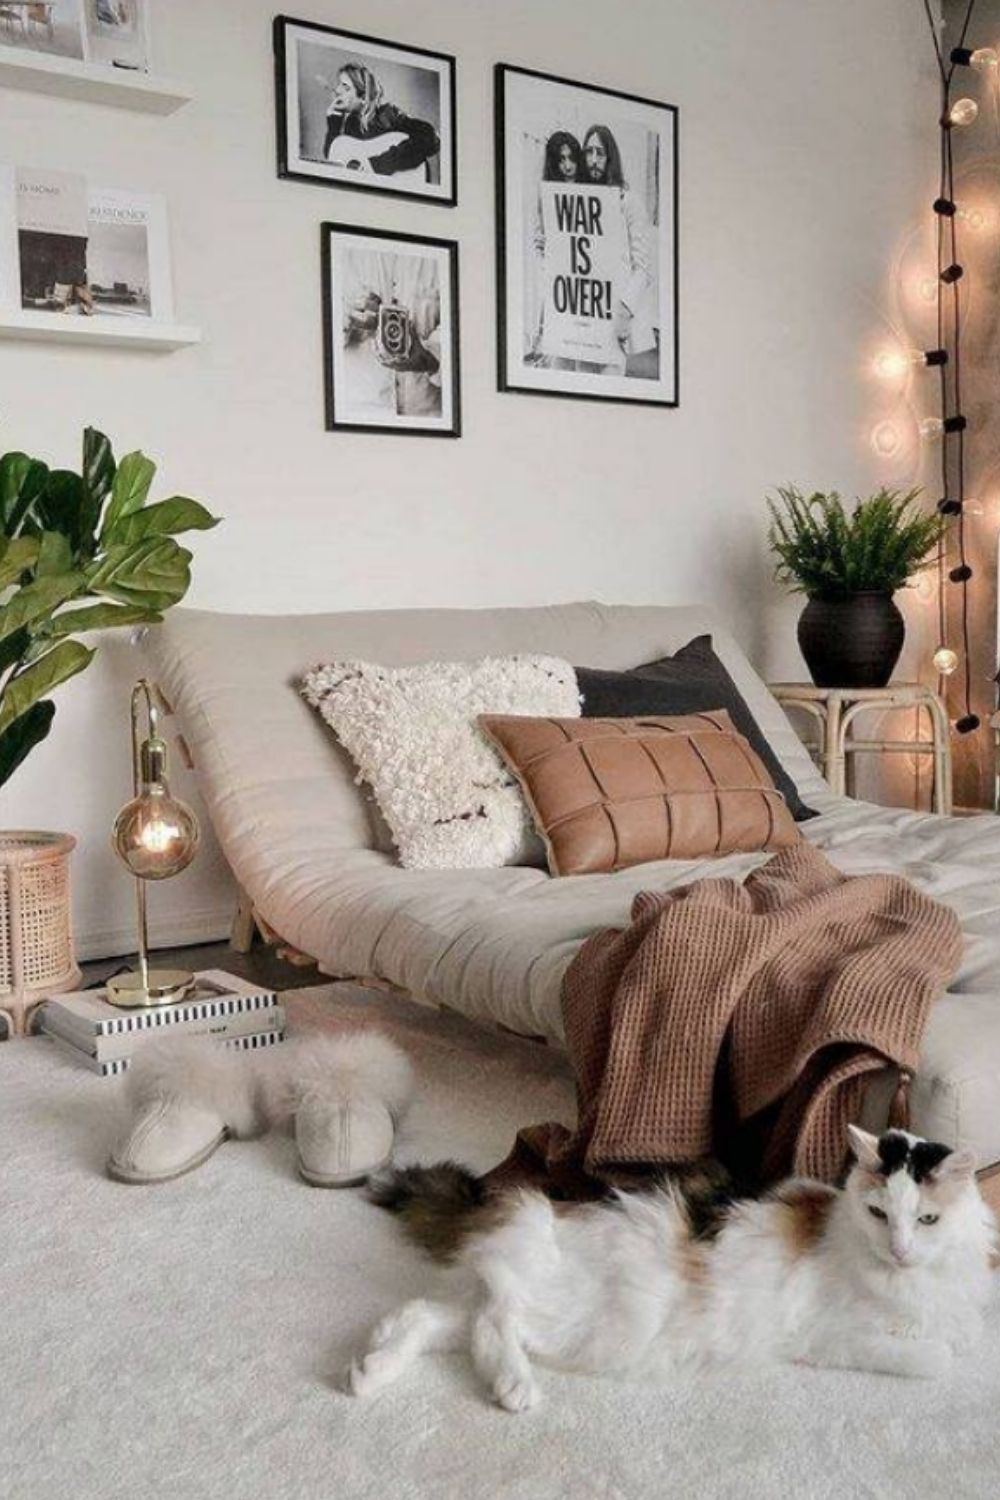 40+ Chic Boho Bedroom Decor Ideas For Your New Home